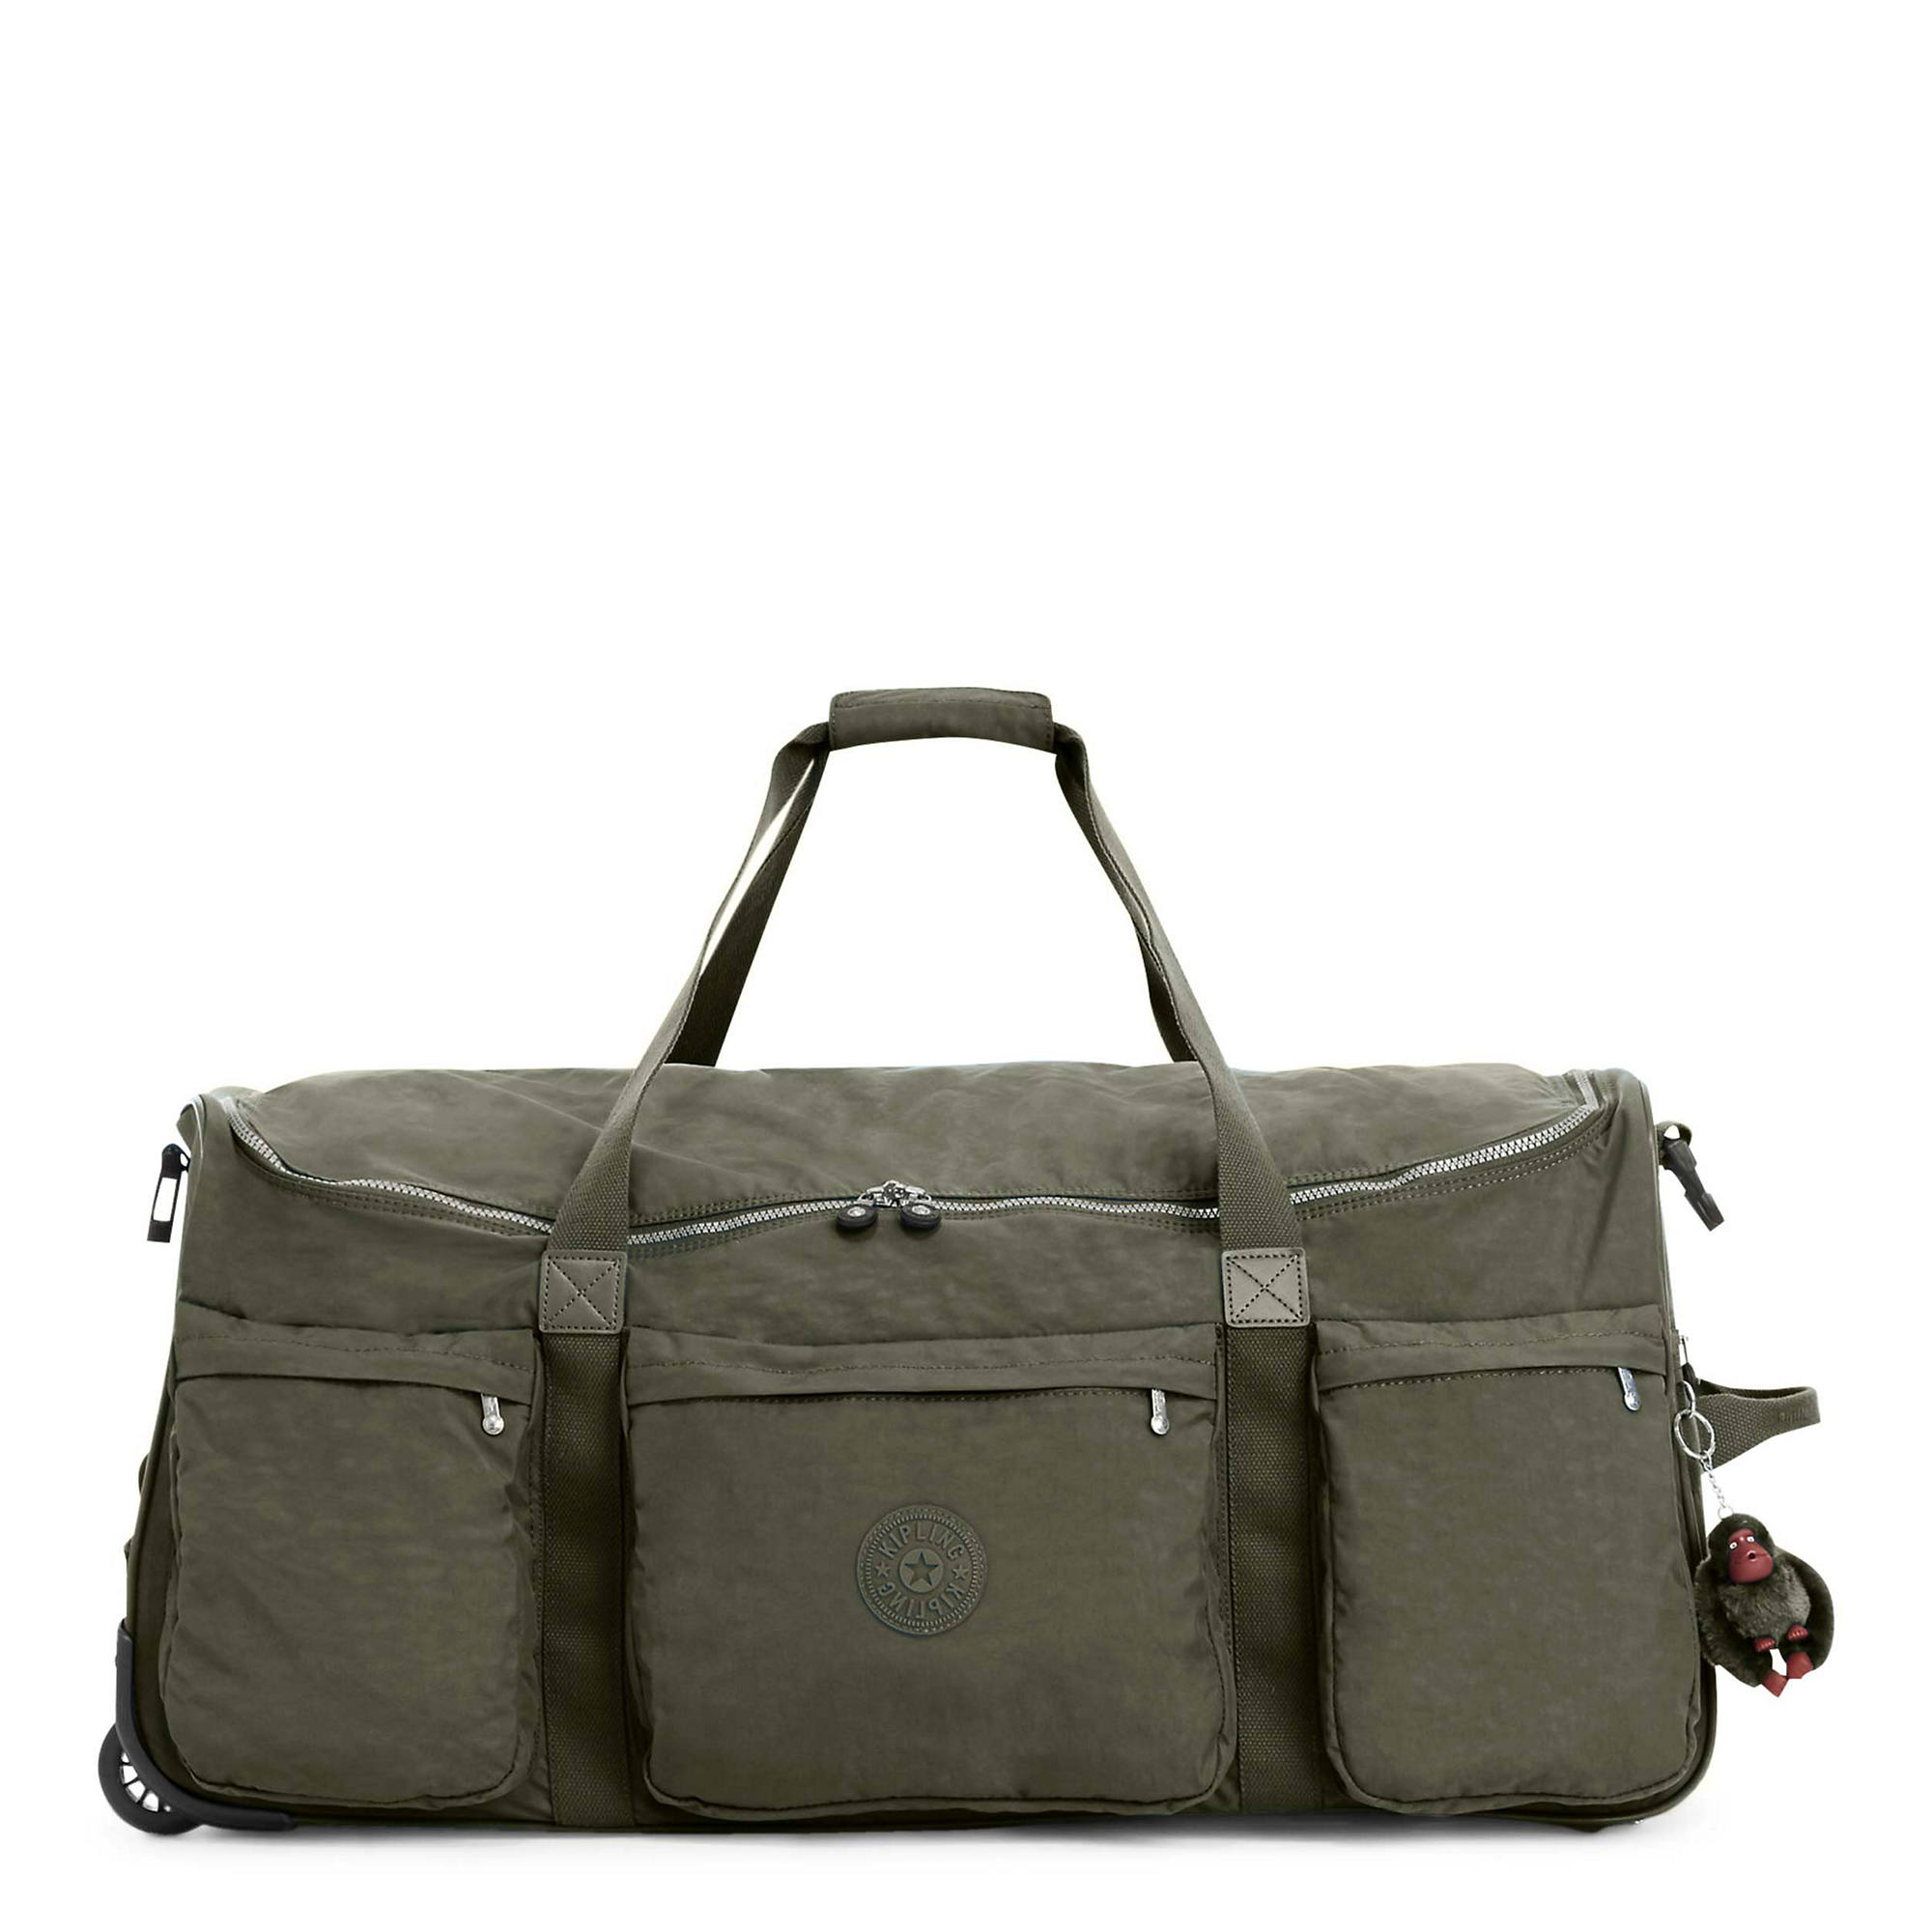 7861ce1c8b Discover Large Rolling Luggage Duffel